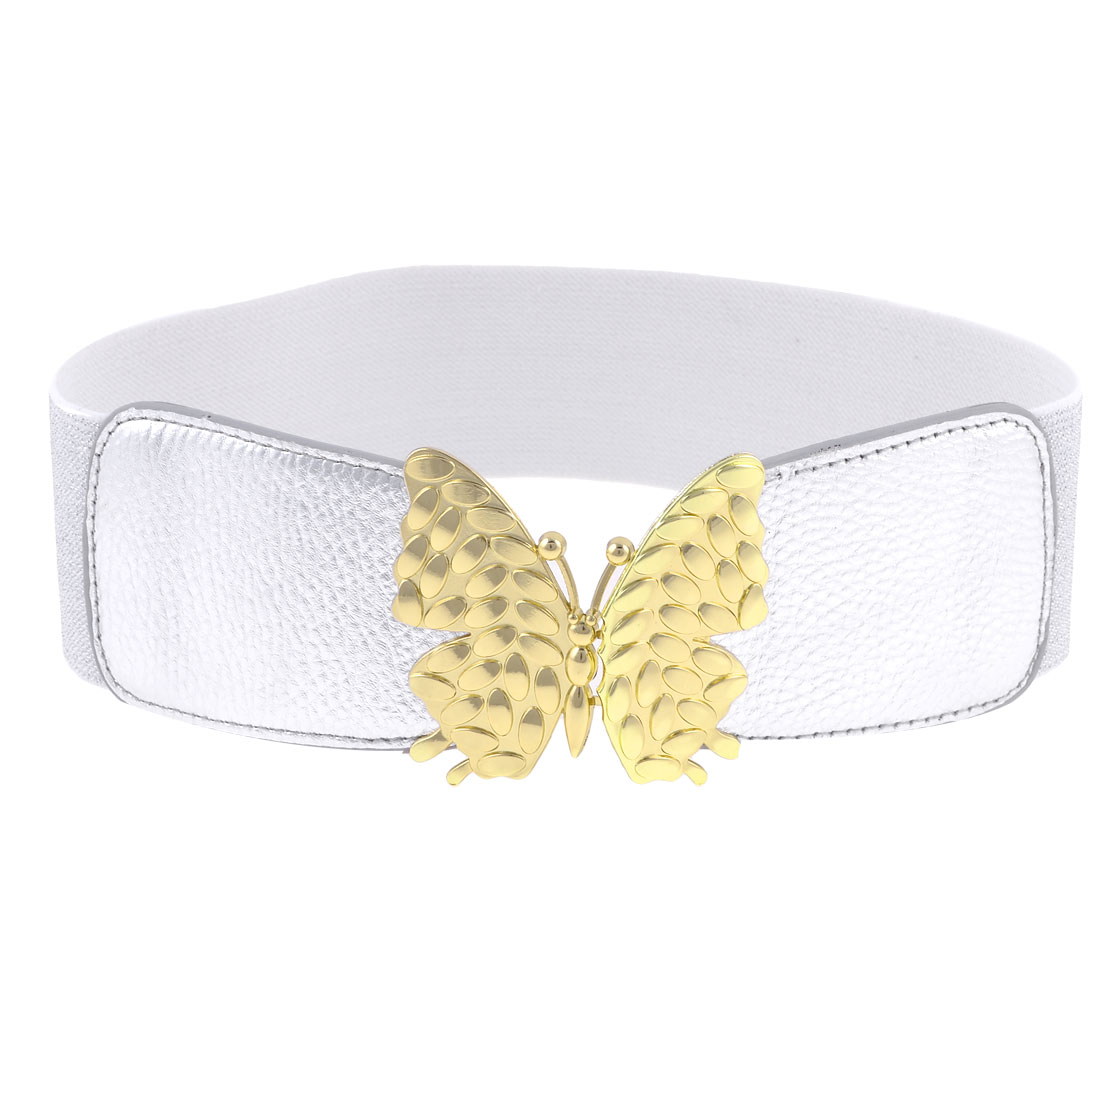 Faux Leather Front Butterfly Interlock Buckle Stretchy Waist Belt Silver Tone